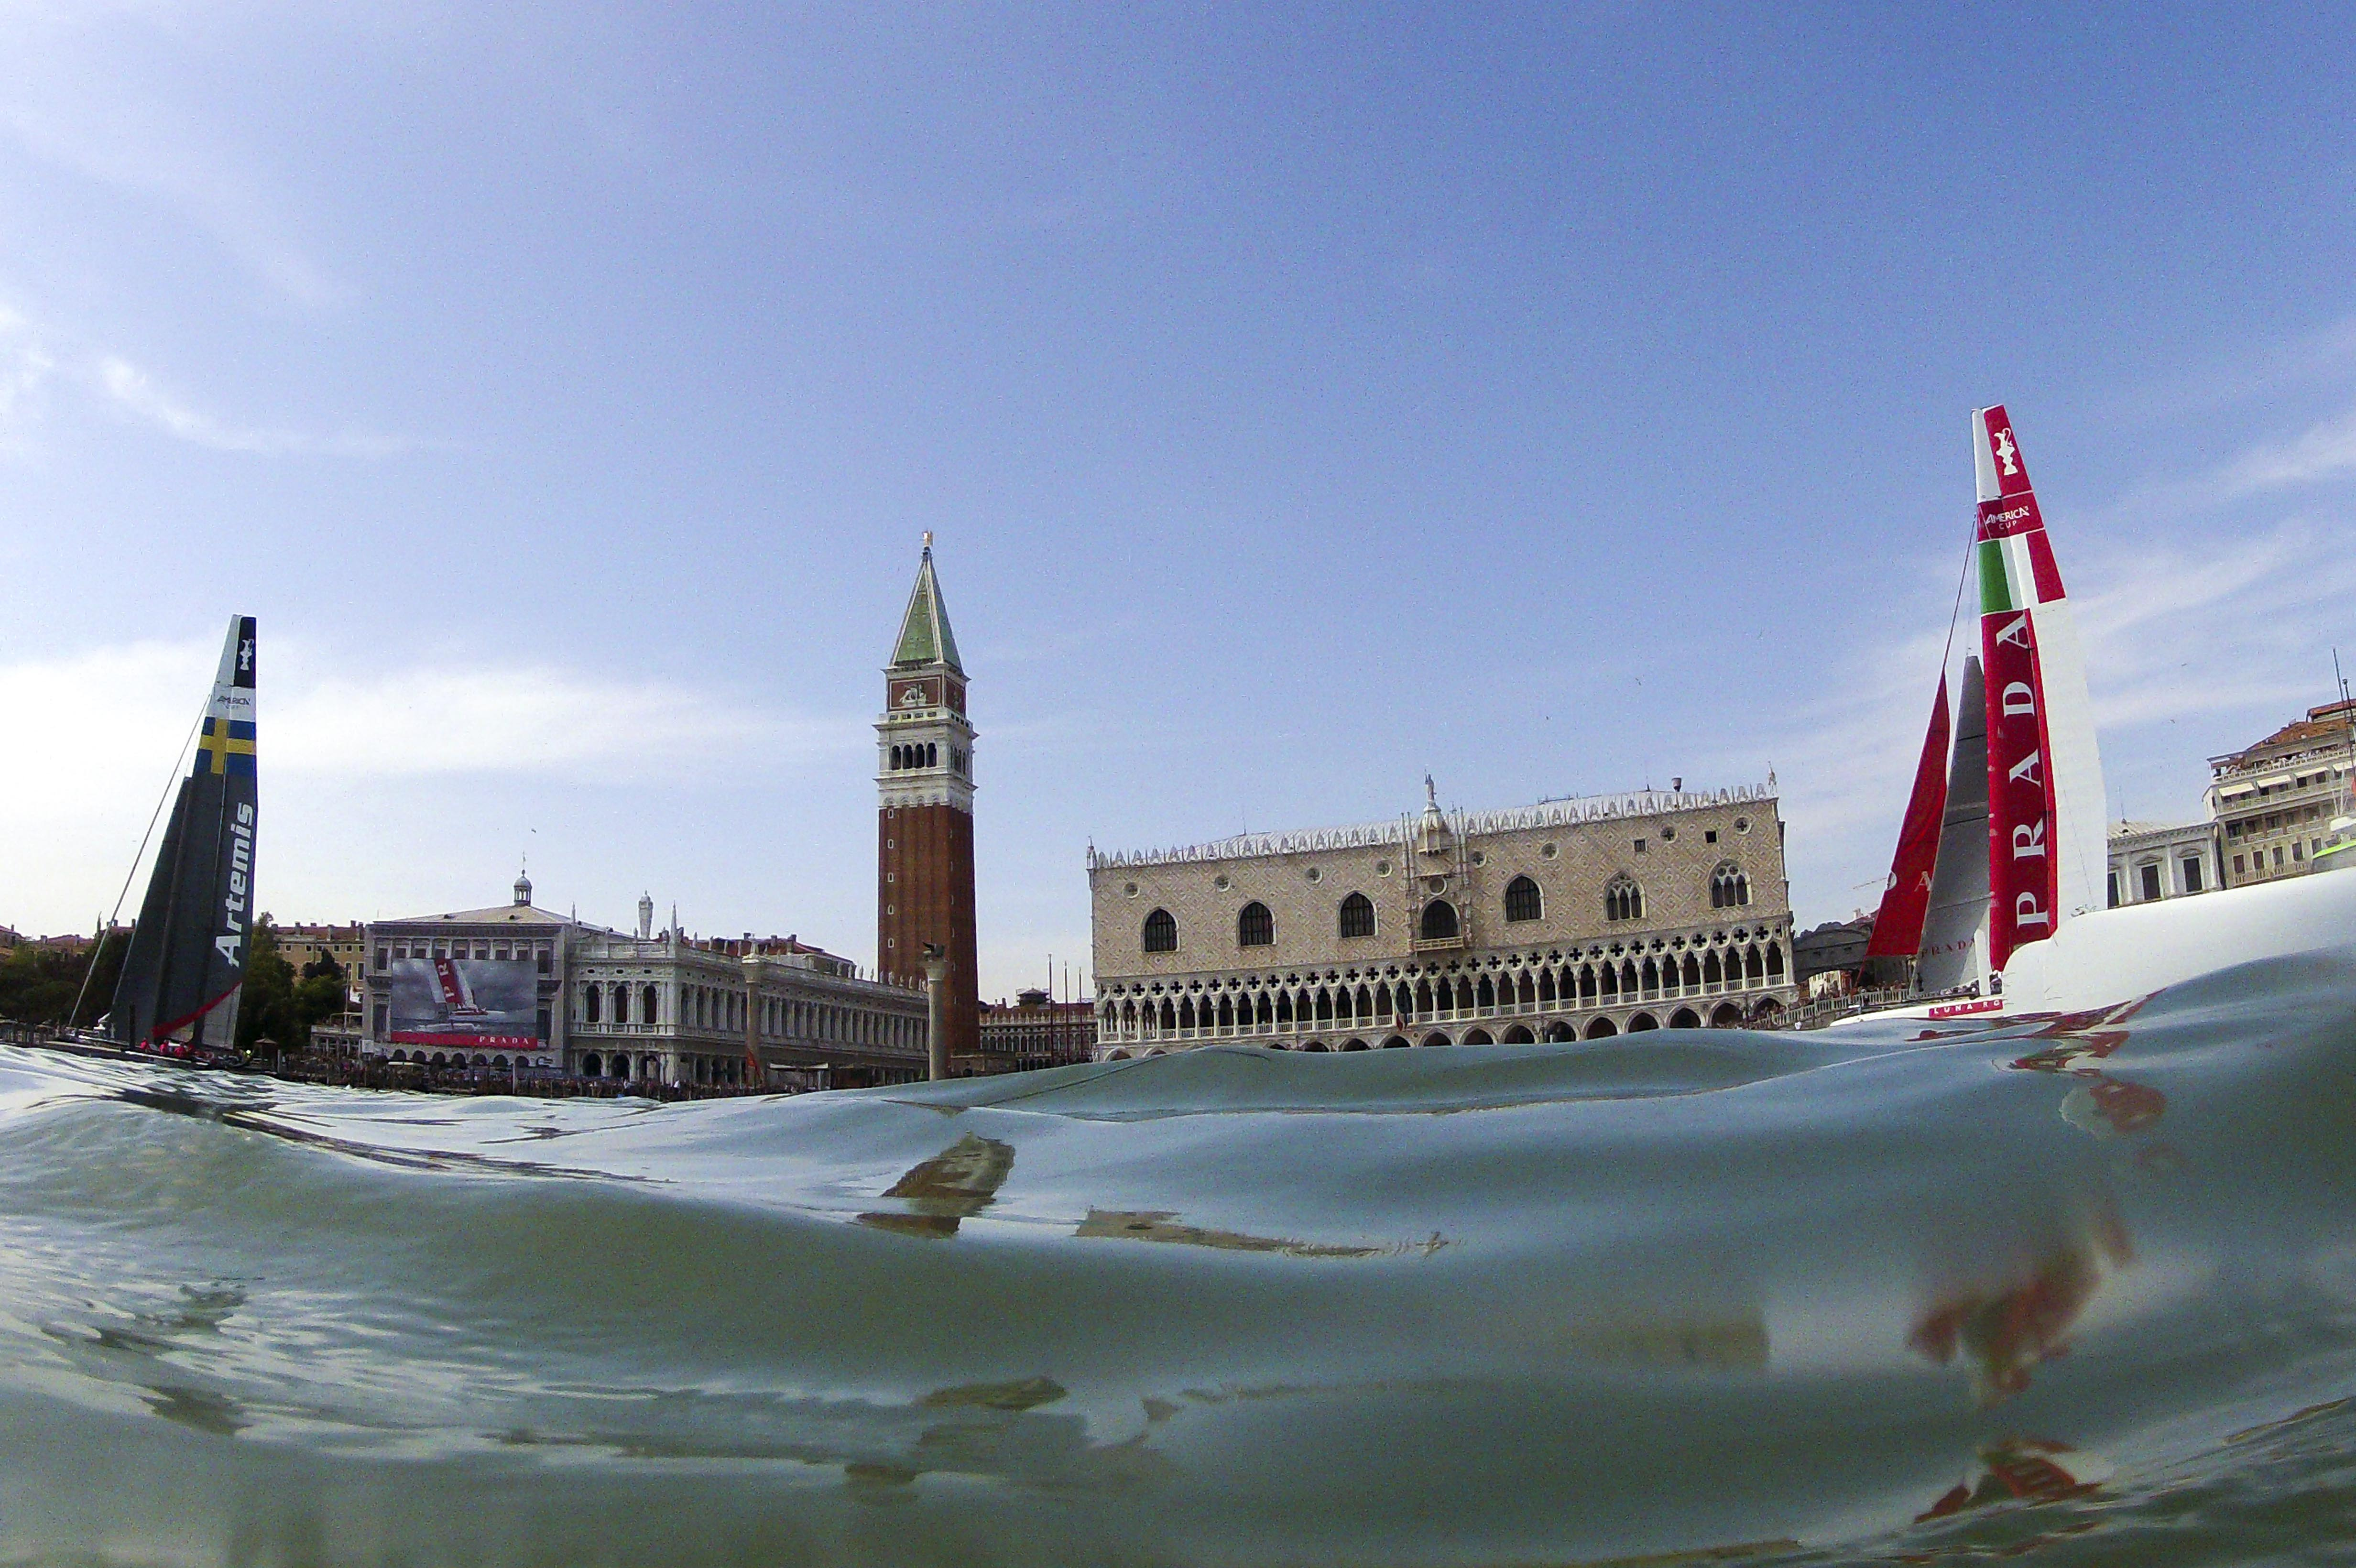 Venice, Italy, America's Cup, 2013